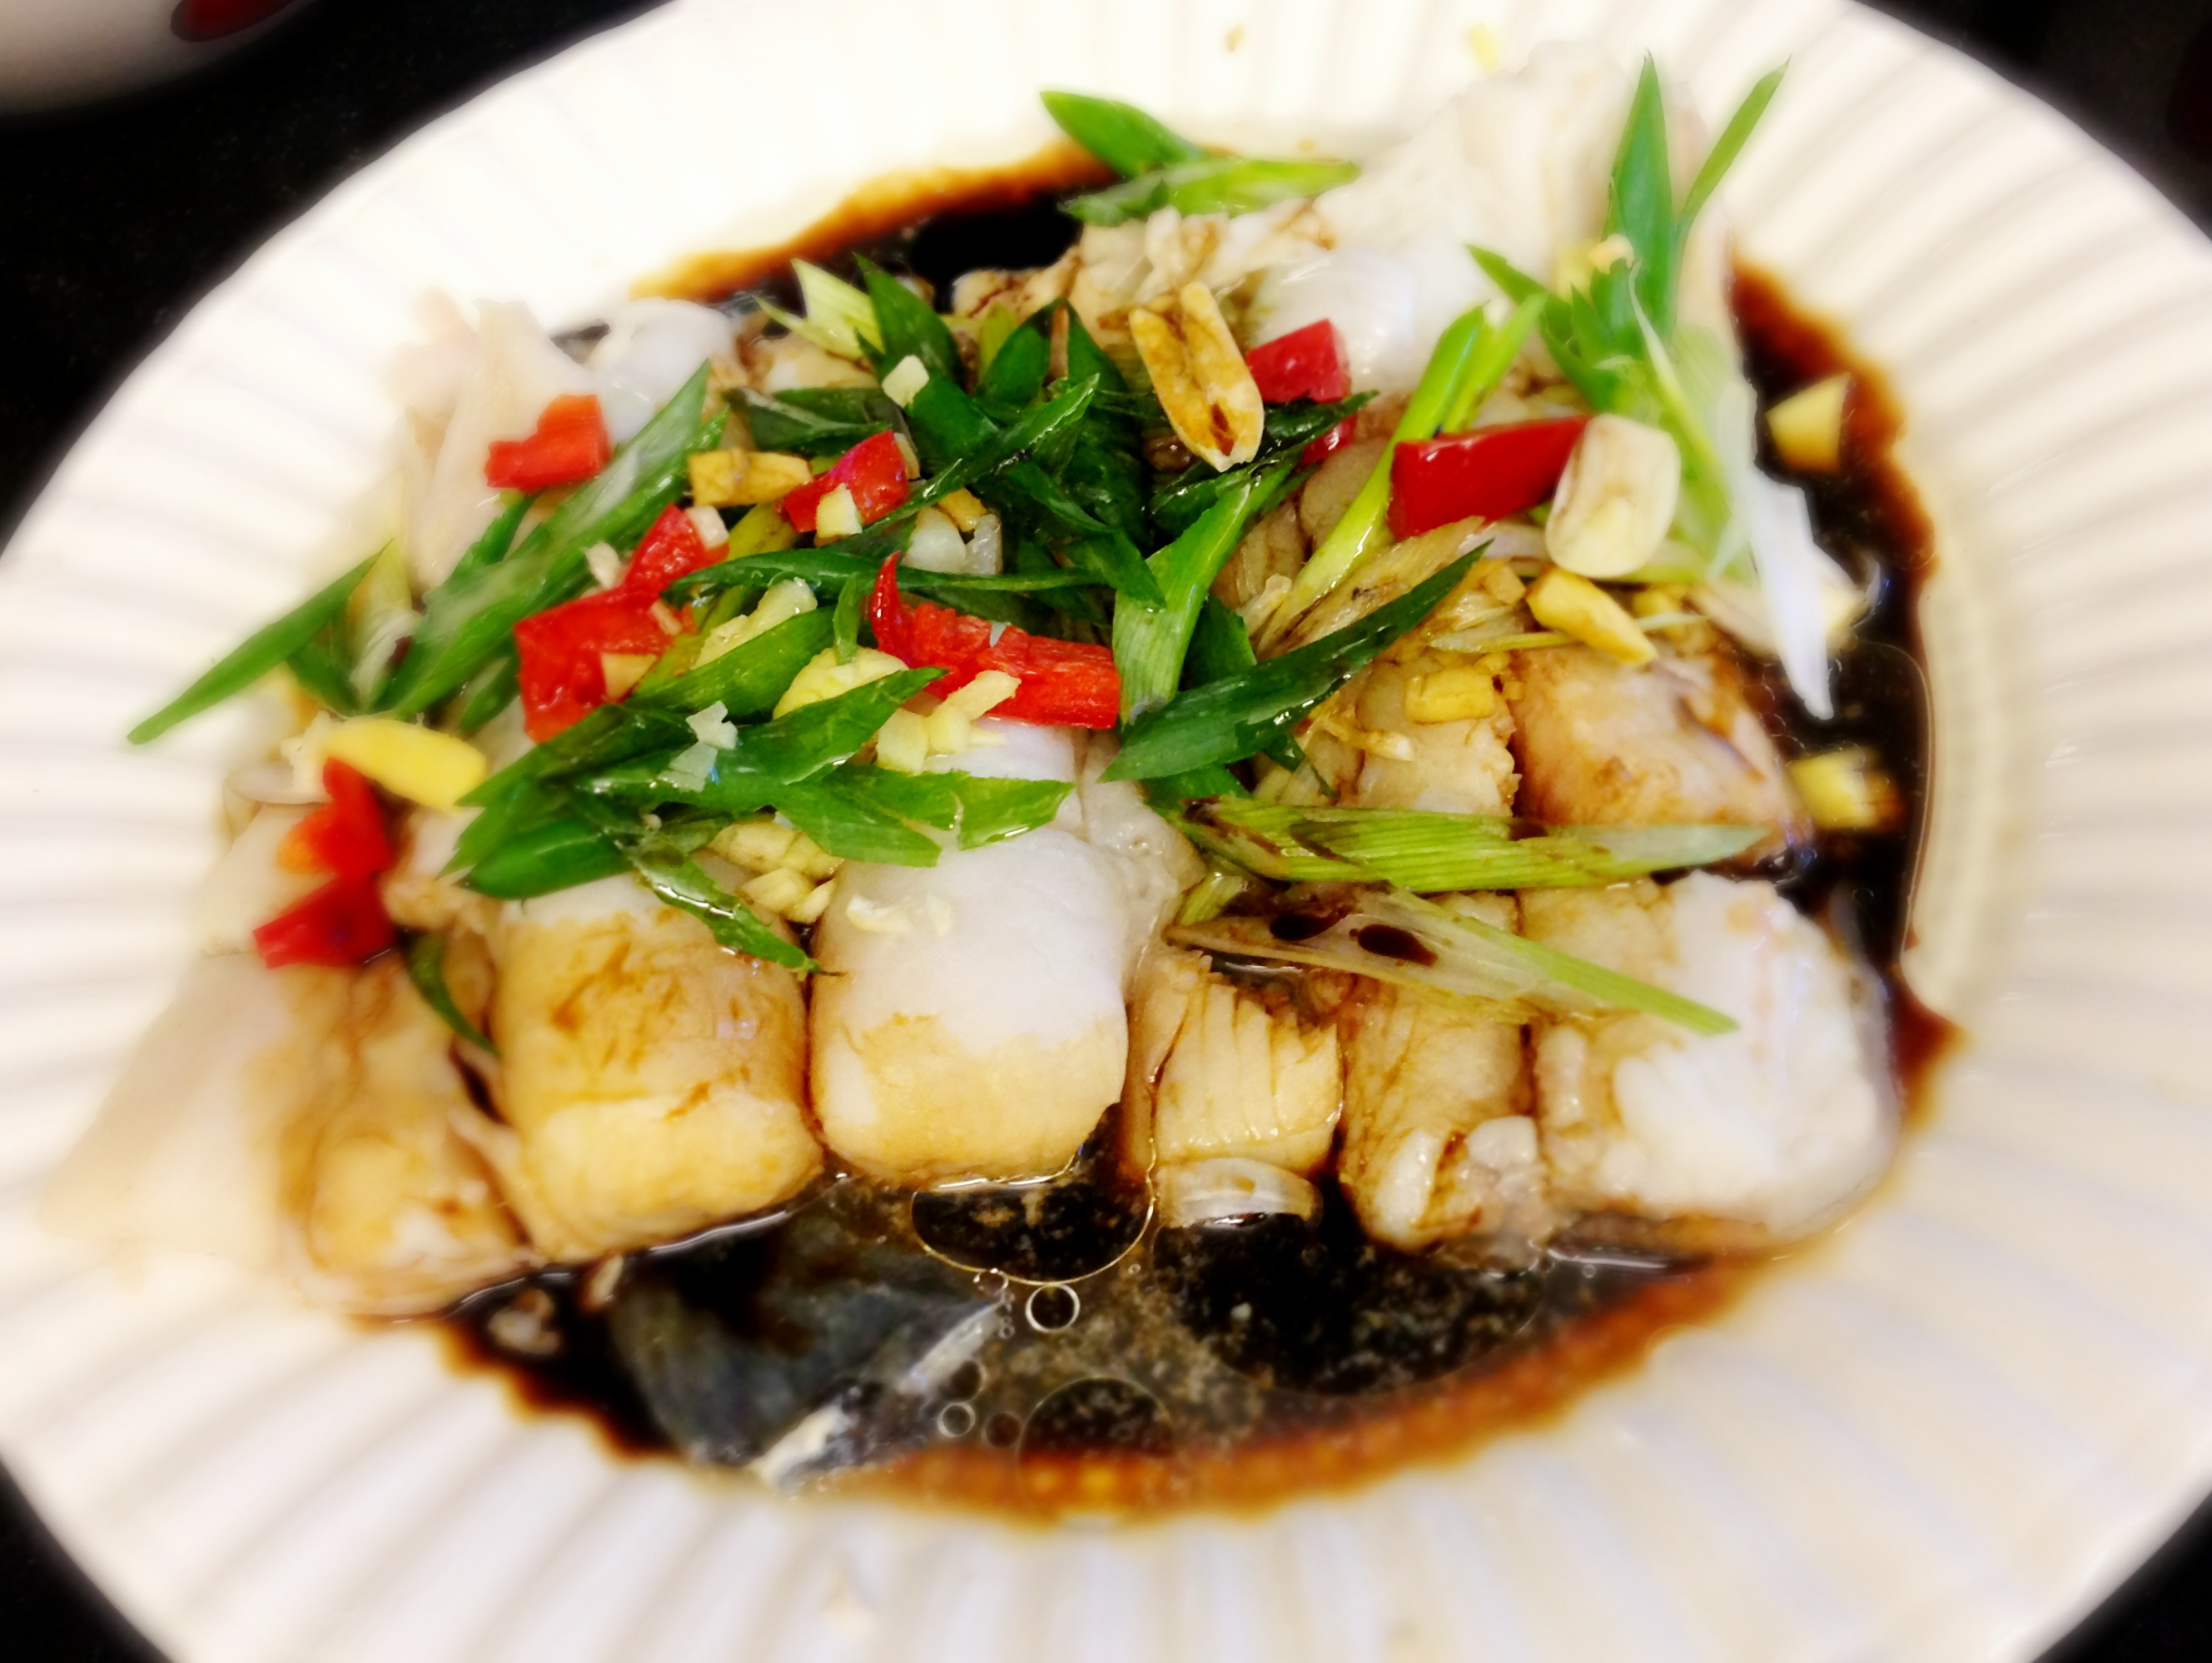 Steamed Halibut and Ling Cod